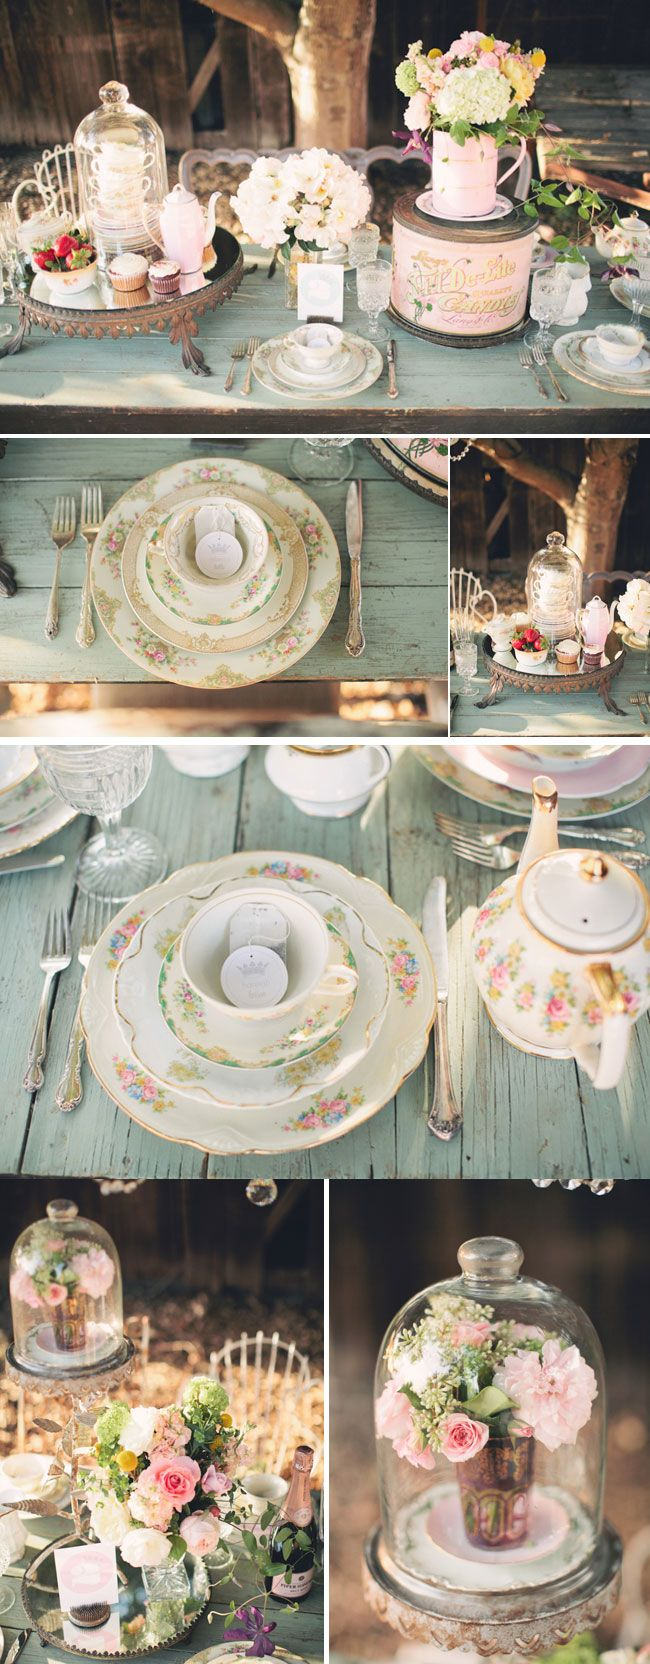 Tea Party! I think this would be great for a bridal shower or even as inspiration for a reception. I love the flowers!